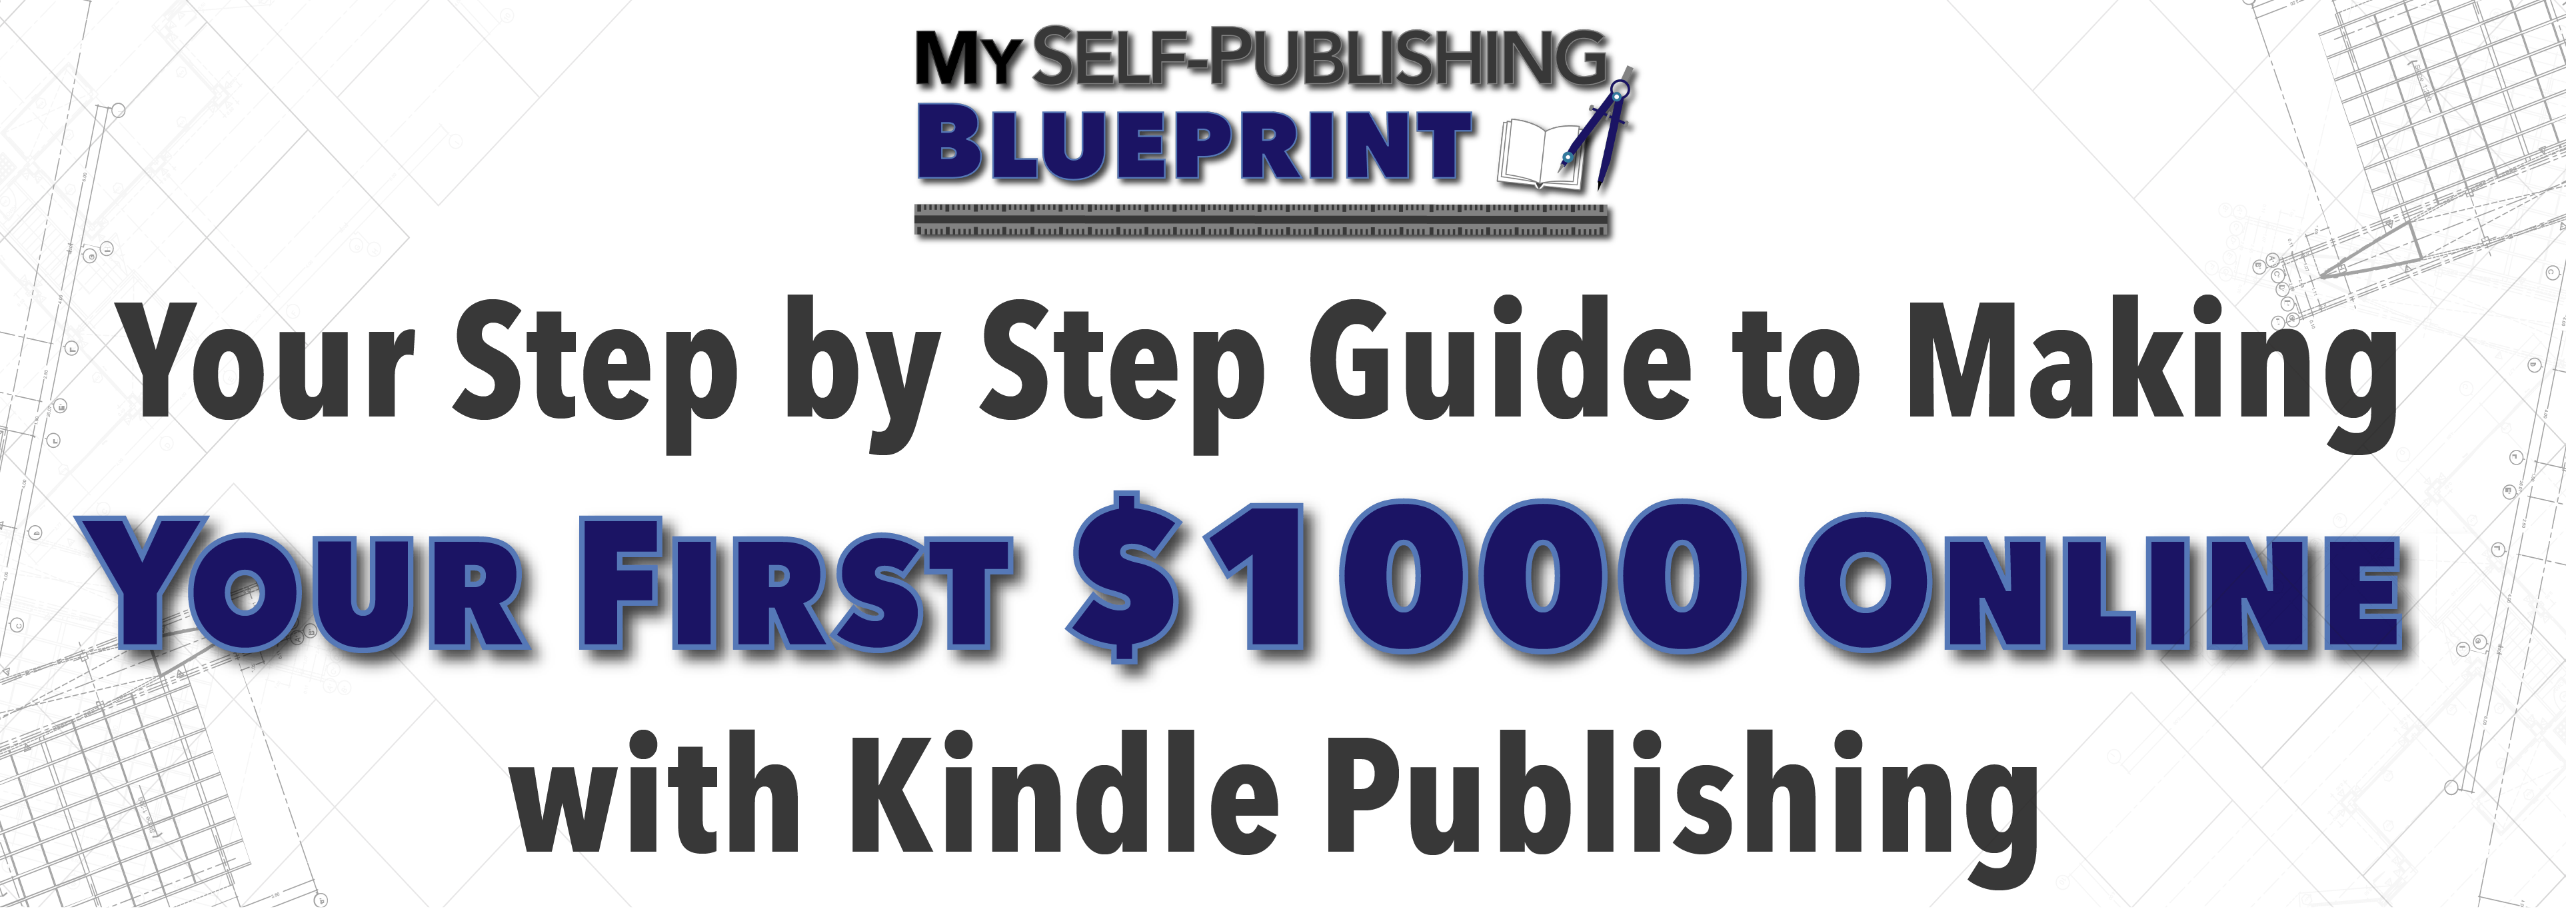 My self publishing blueprint malvernweather Gallery